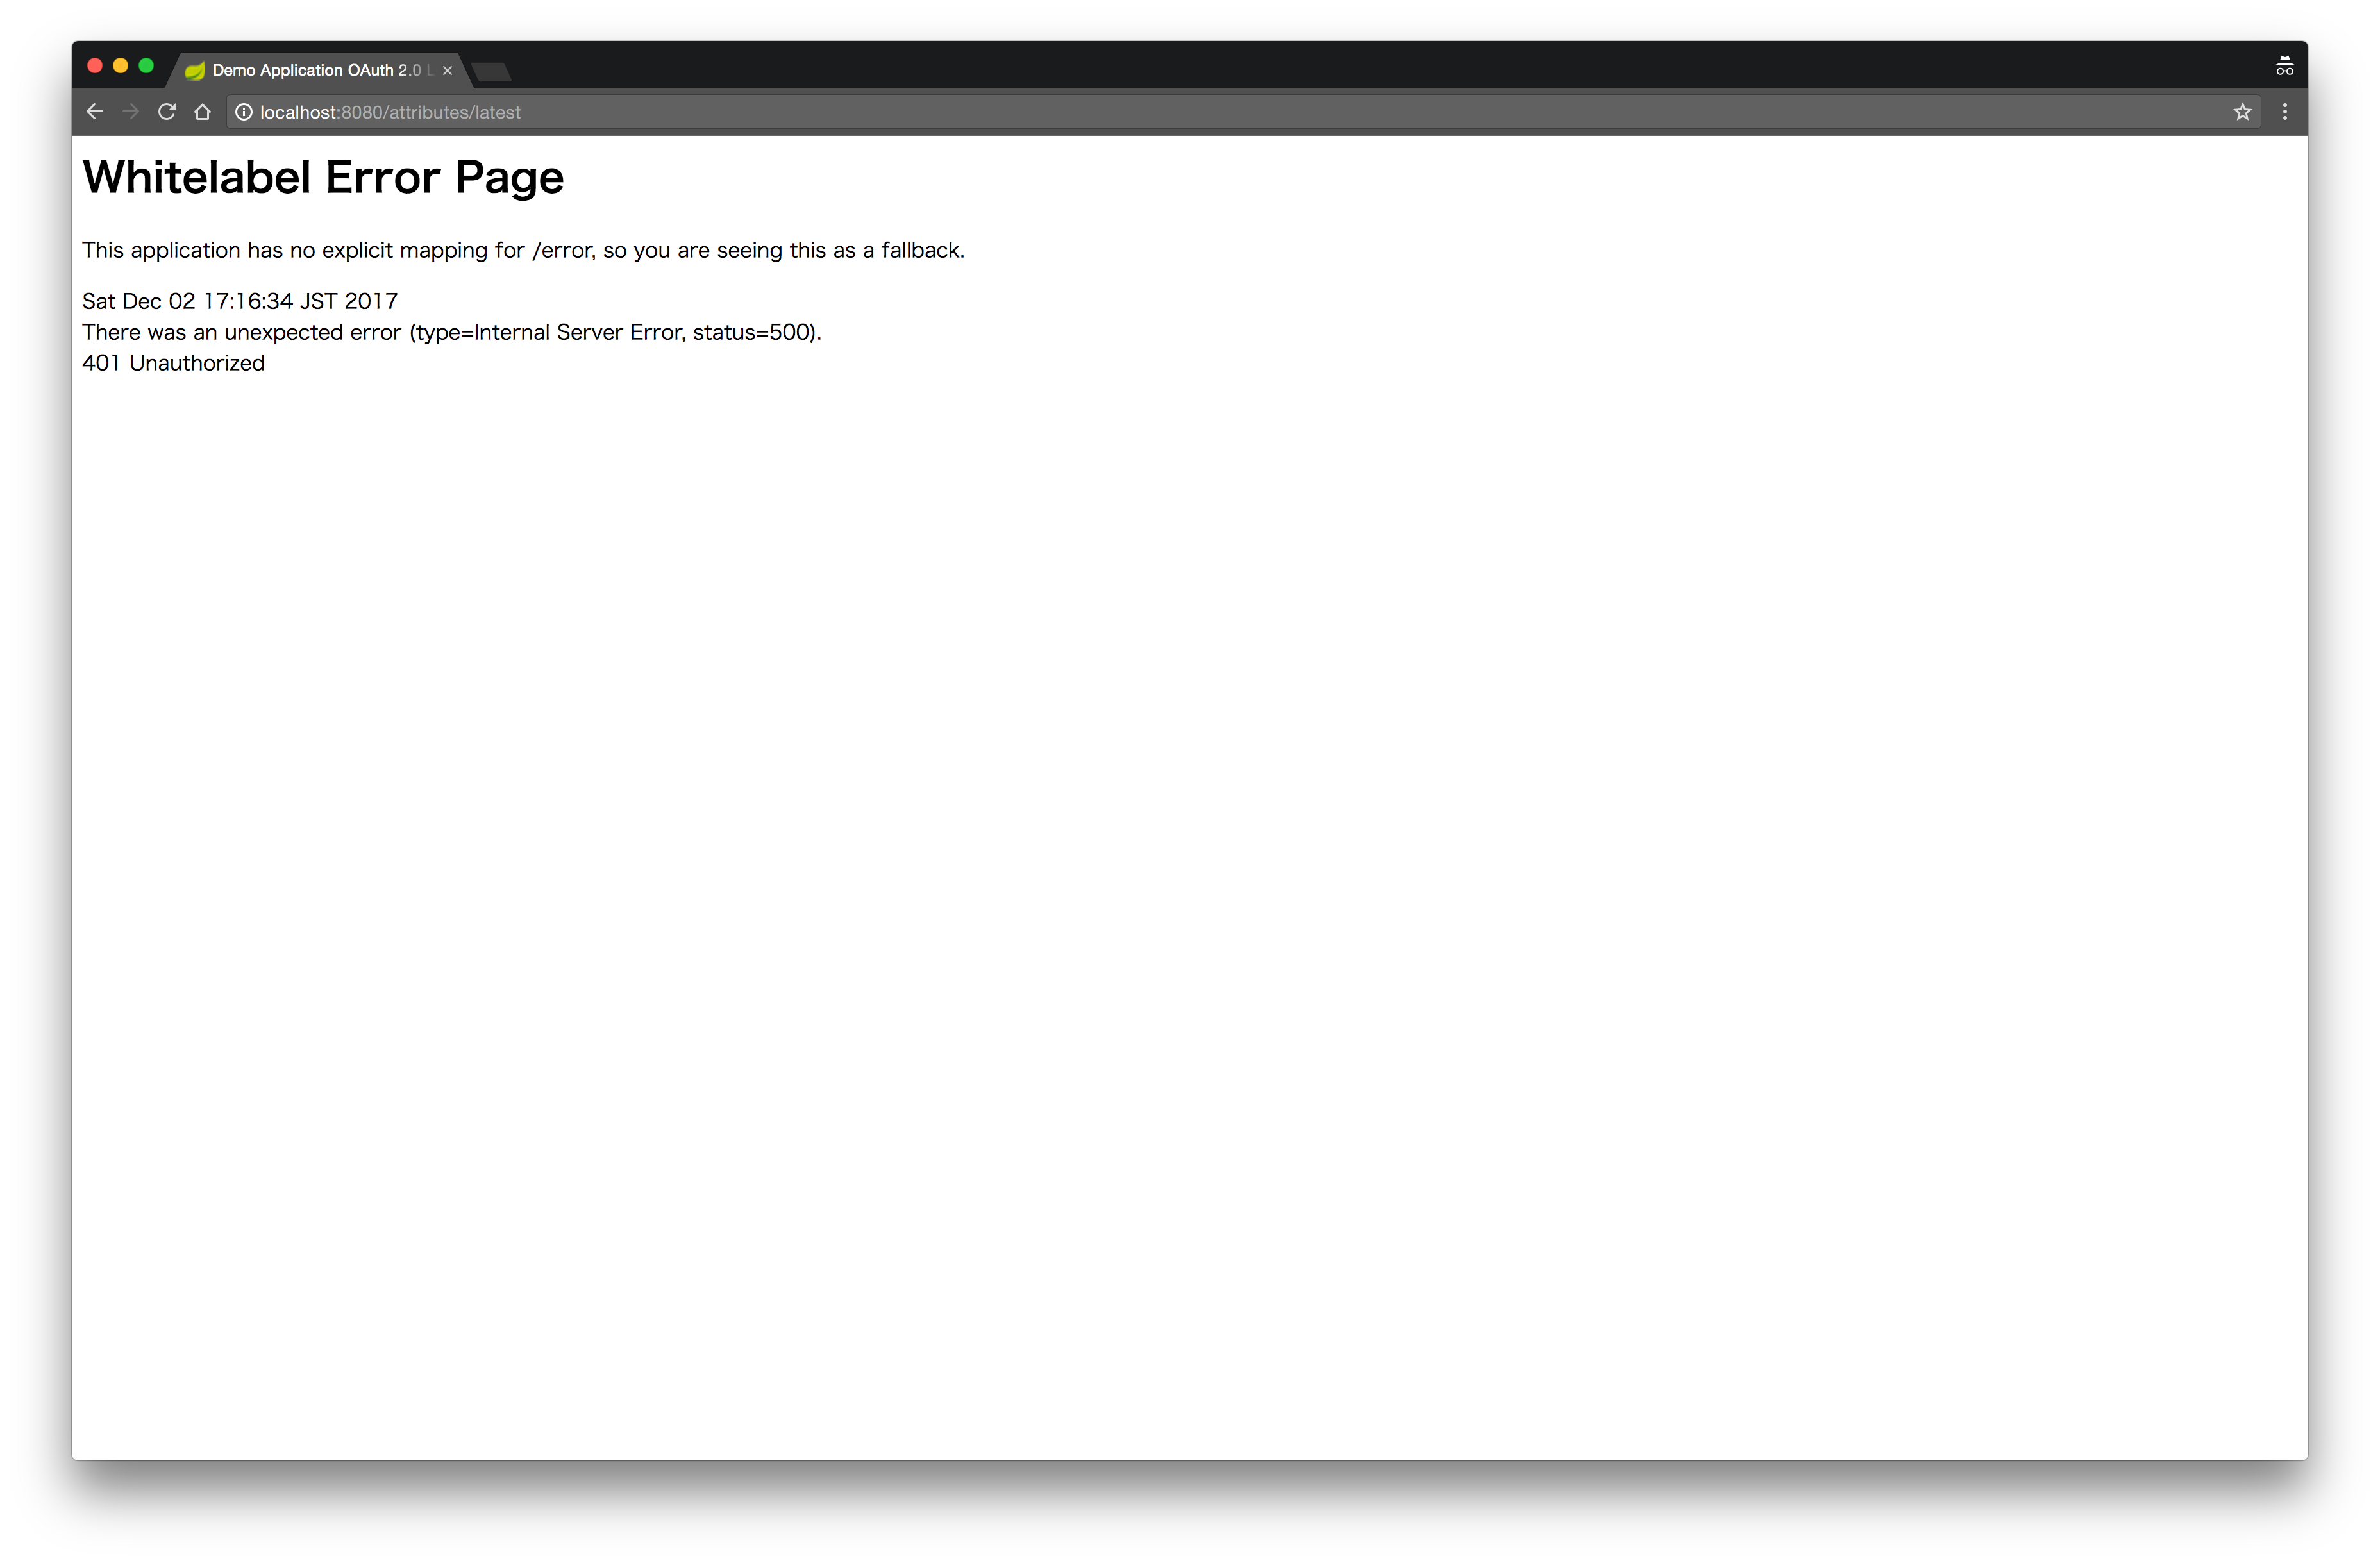 oauth2-error-page-after-revoke.png